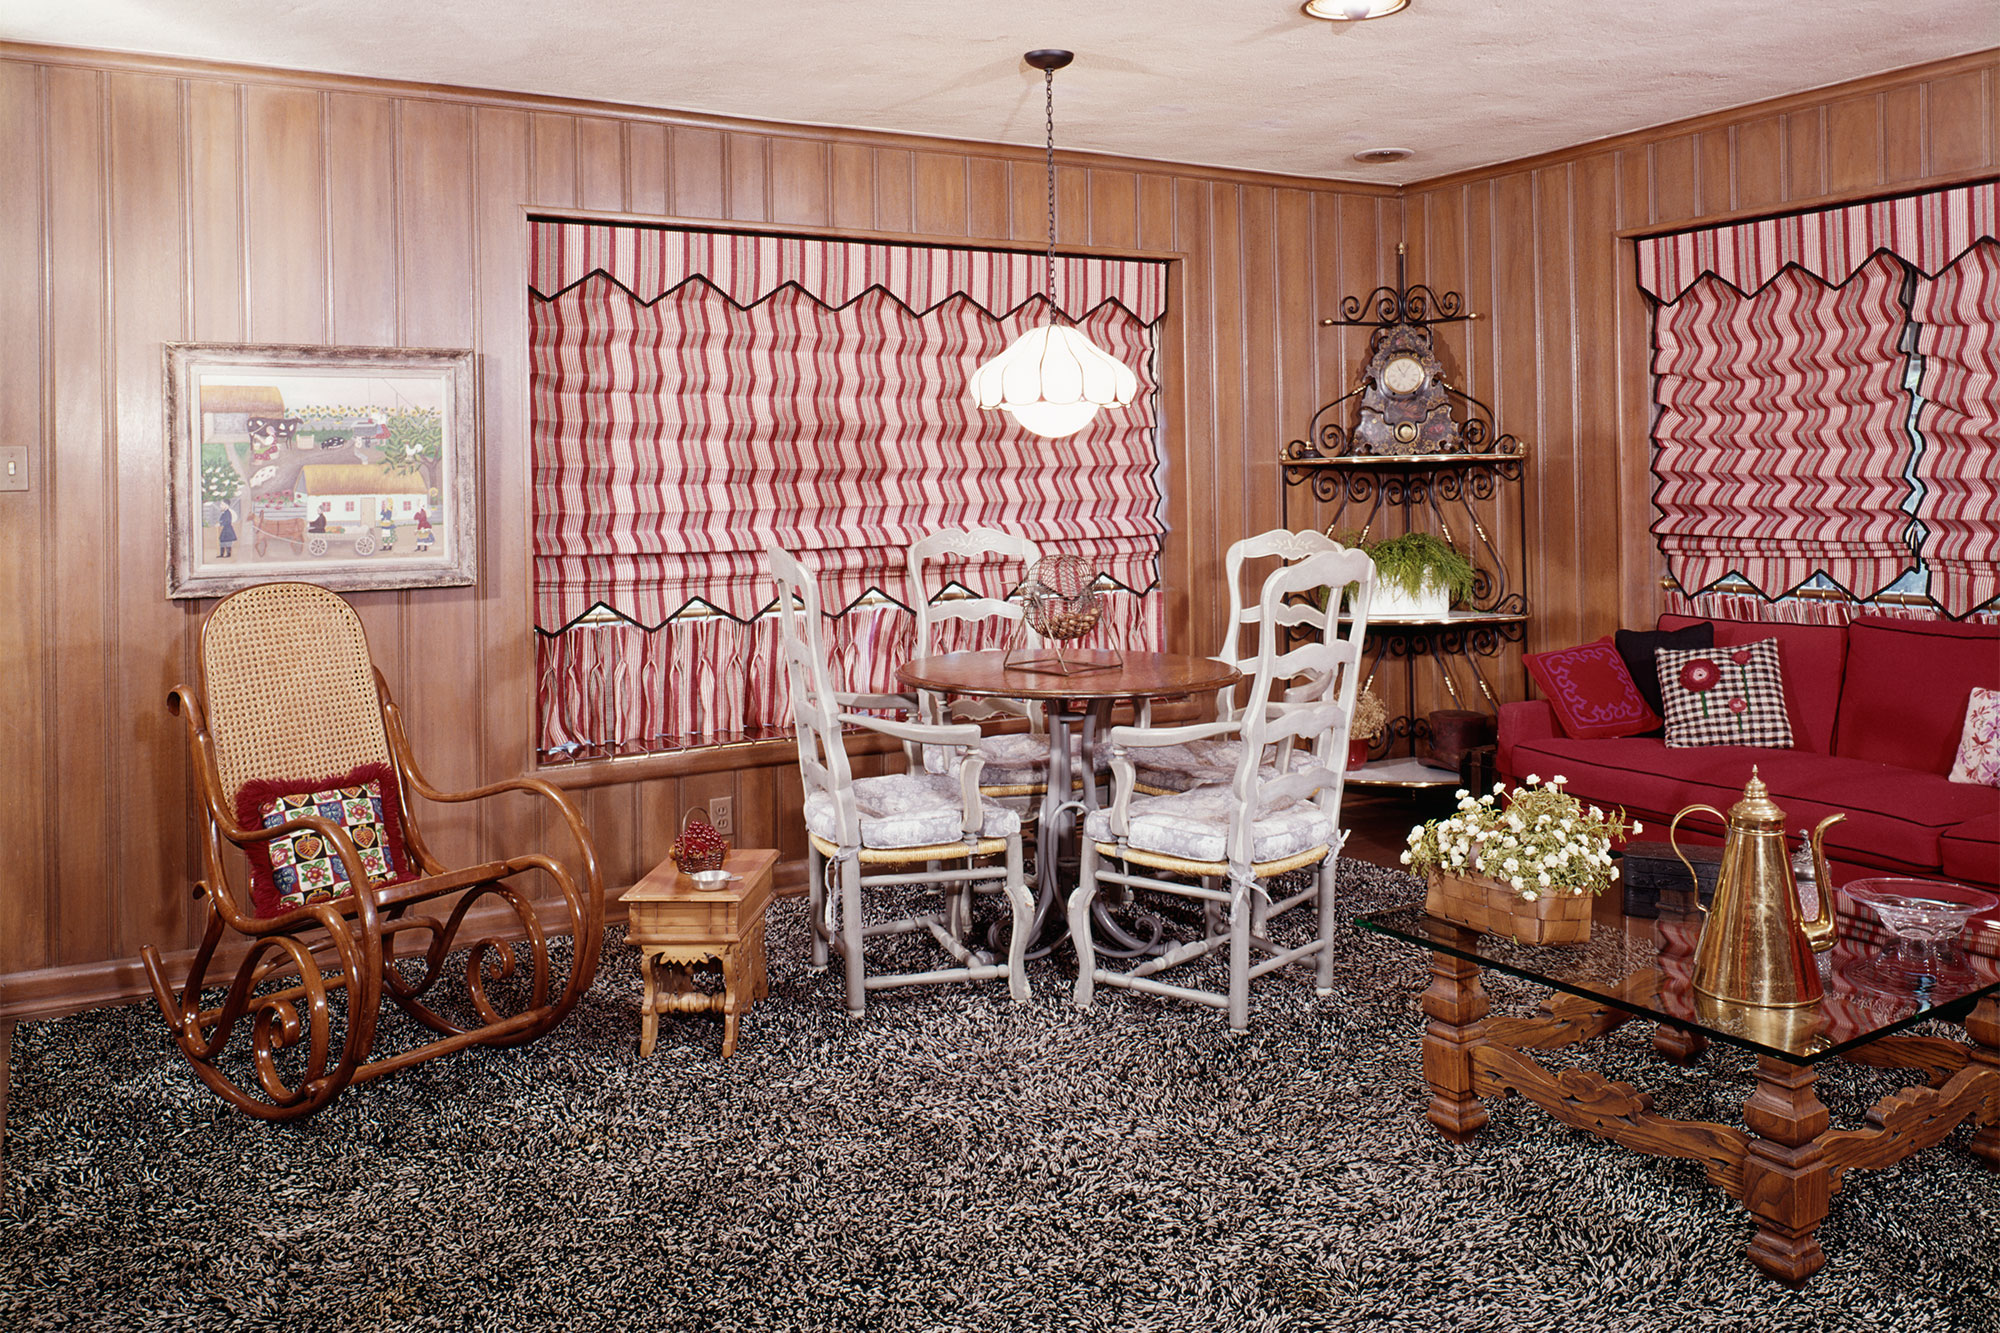 outdated wood paneling - The Turwitt Team